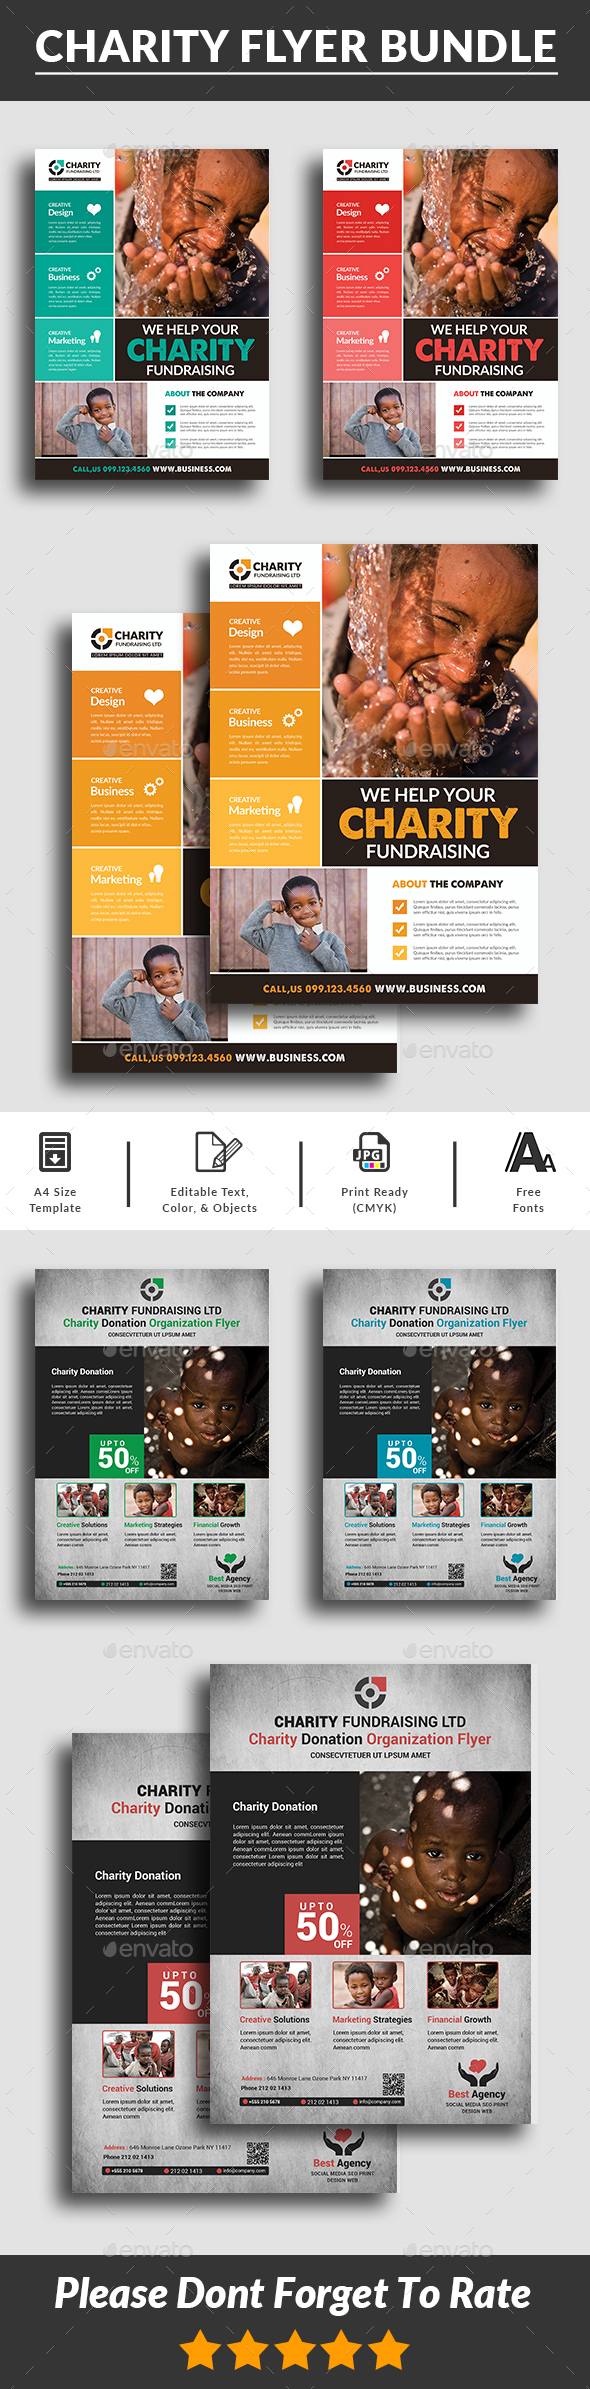 Charity Flyers Bundle Templates - Corporate Flyers